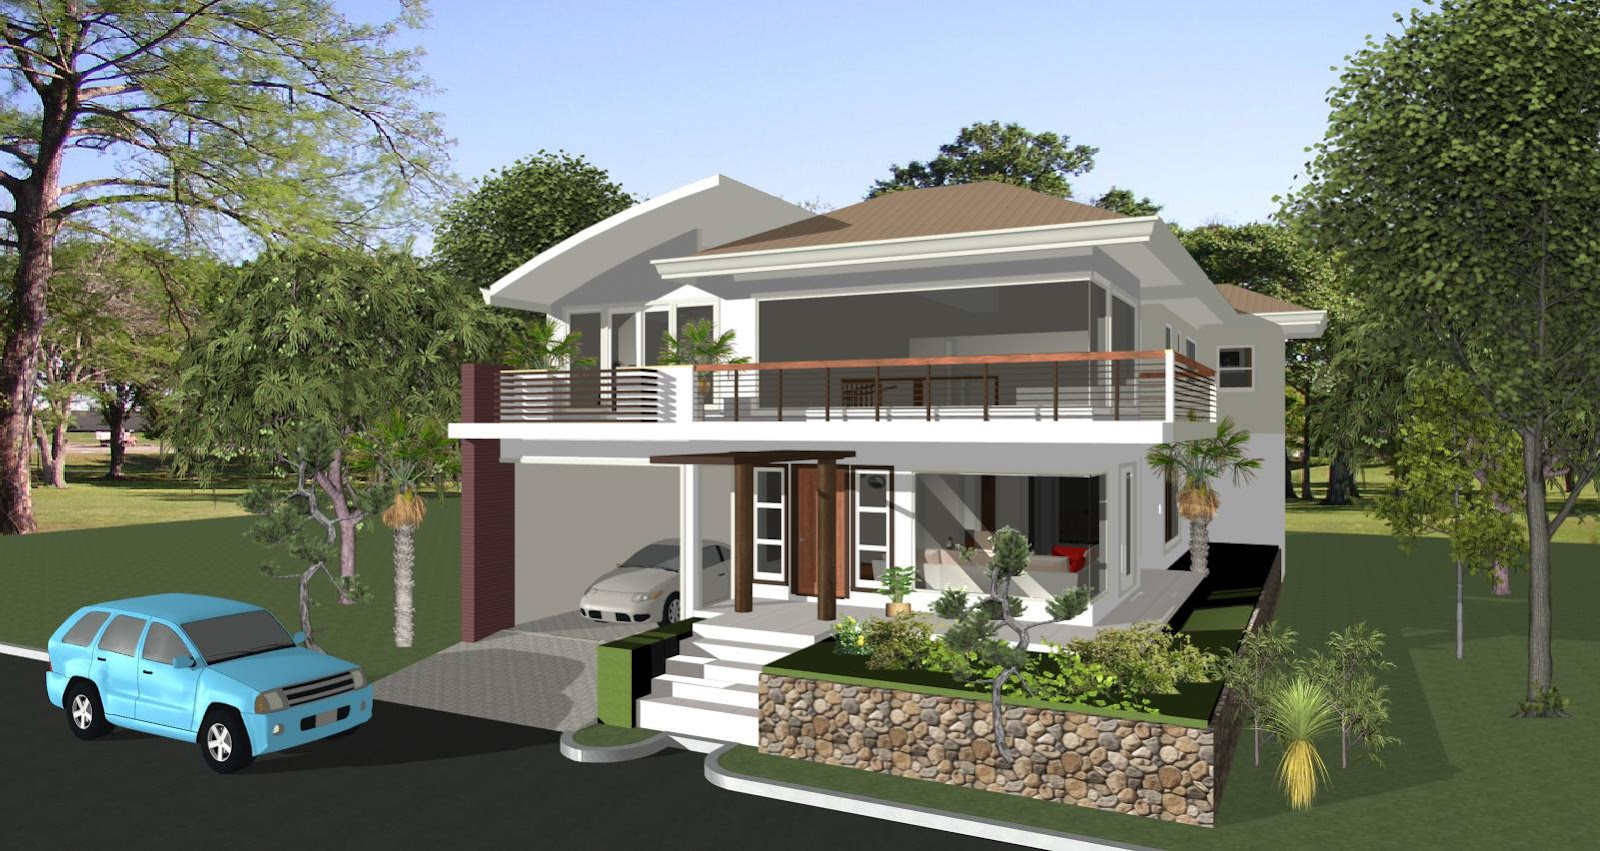 House designs philippines architect bill house plans Home design dream house